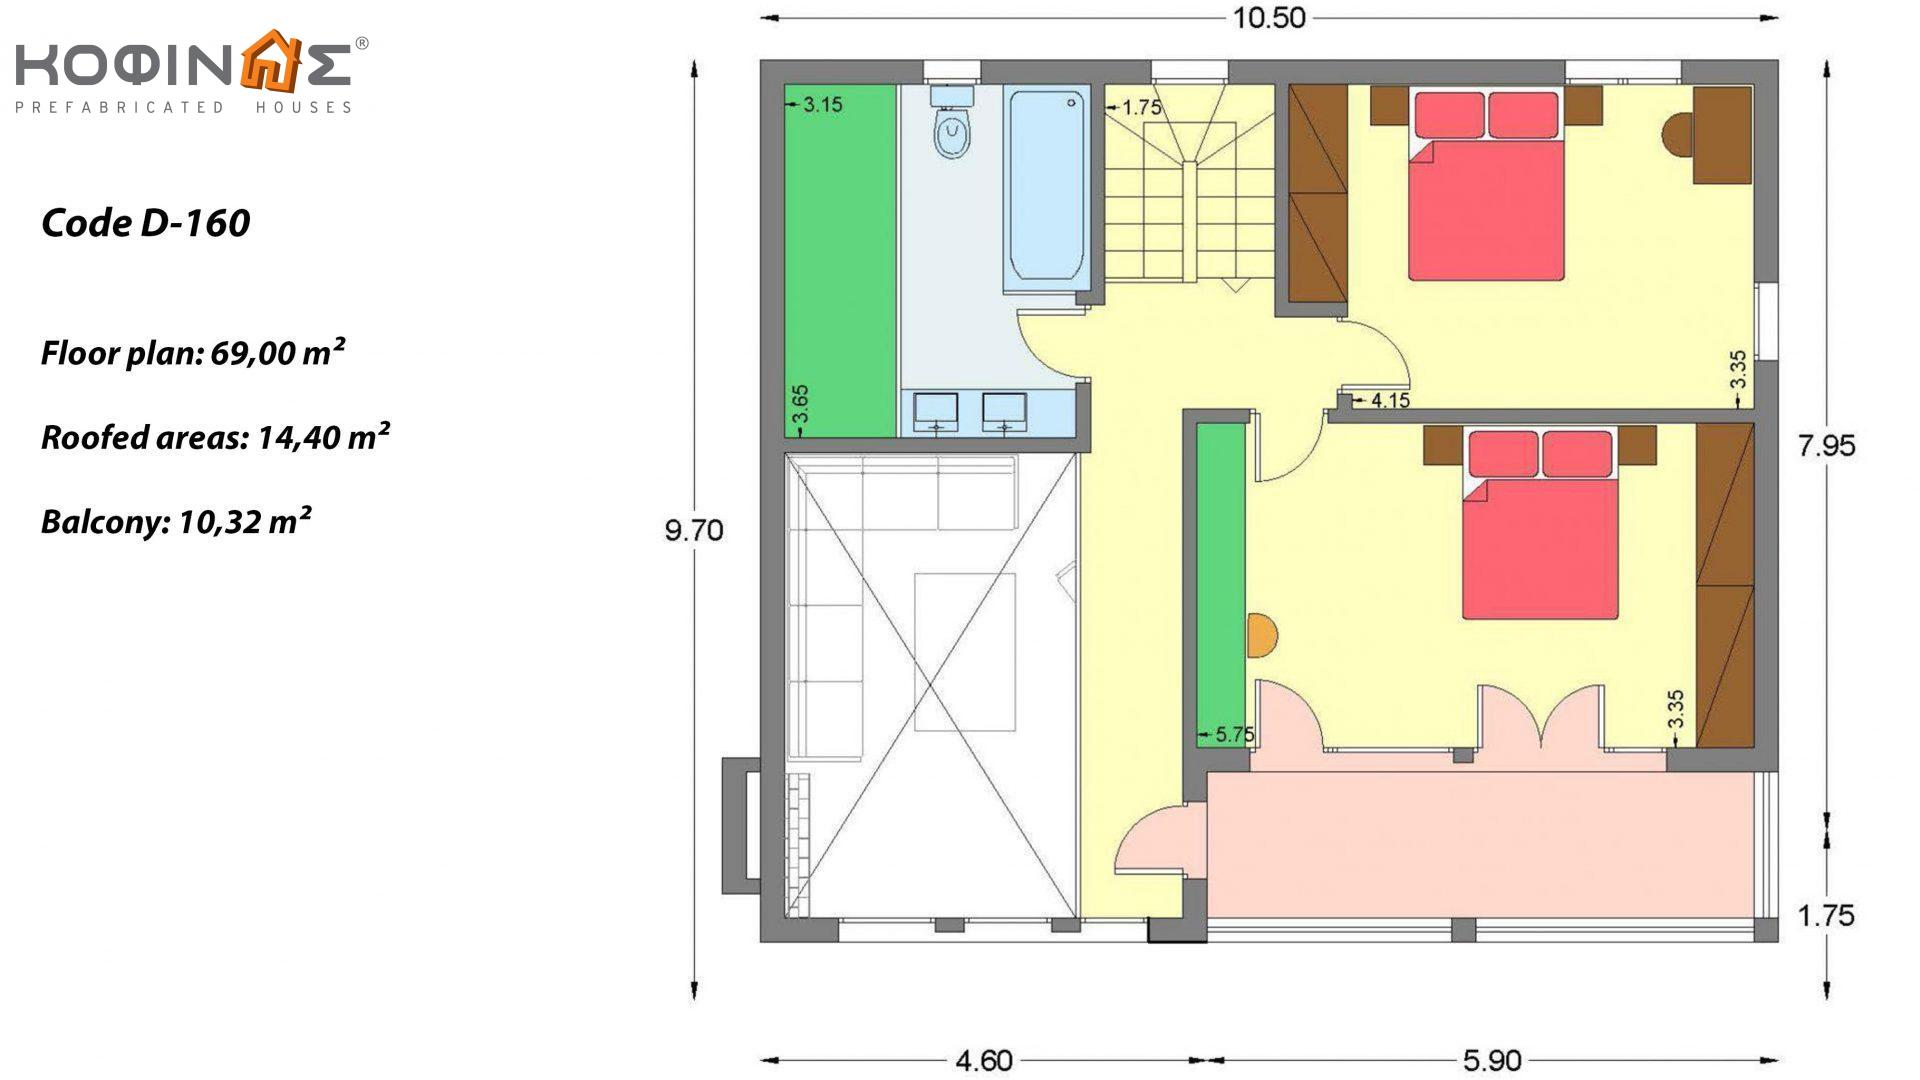 2-story house D-160, total surface 160.52 m² ,roofed areas 24.72 m²,balconies 10.32 m²